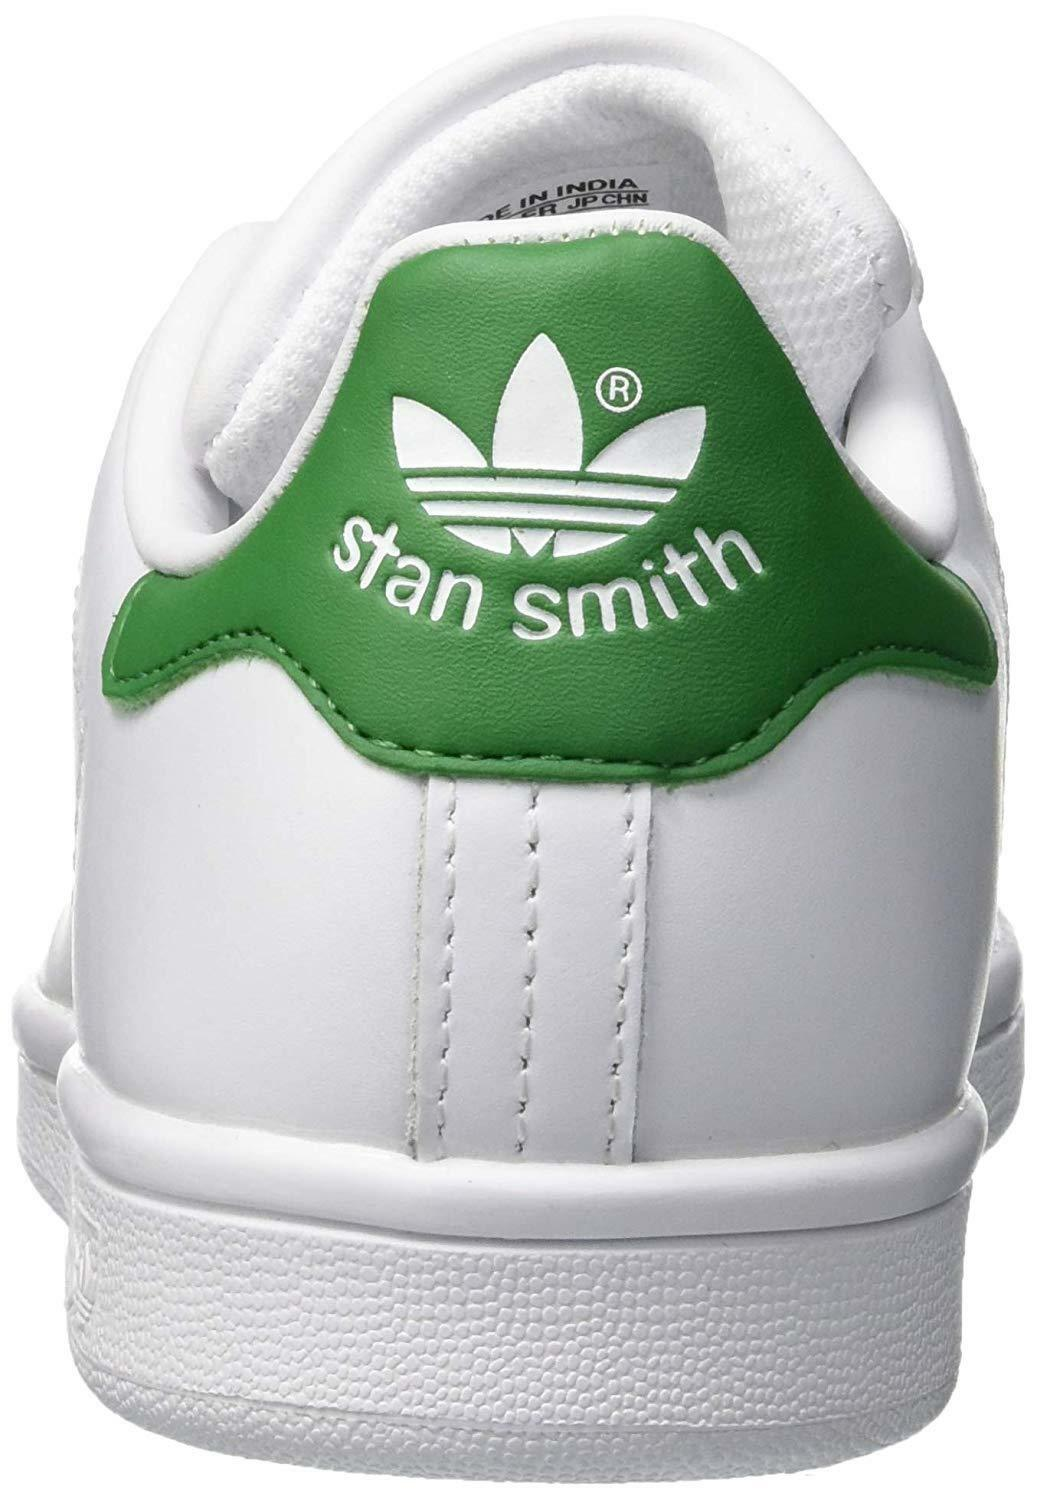 Adidas Para Hombre Stan (Blanco/Fairway) Smith Zapatos Zapatos Zapatos  Atléticos f5a54a